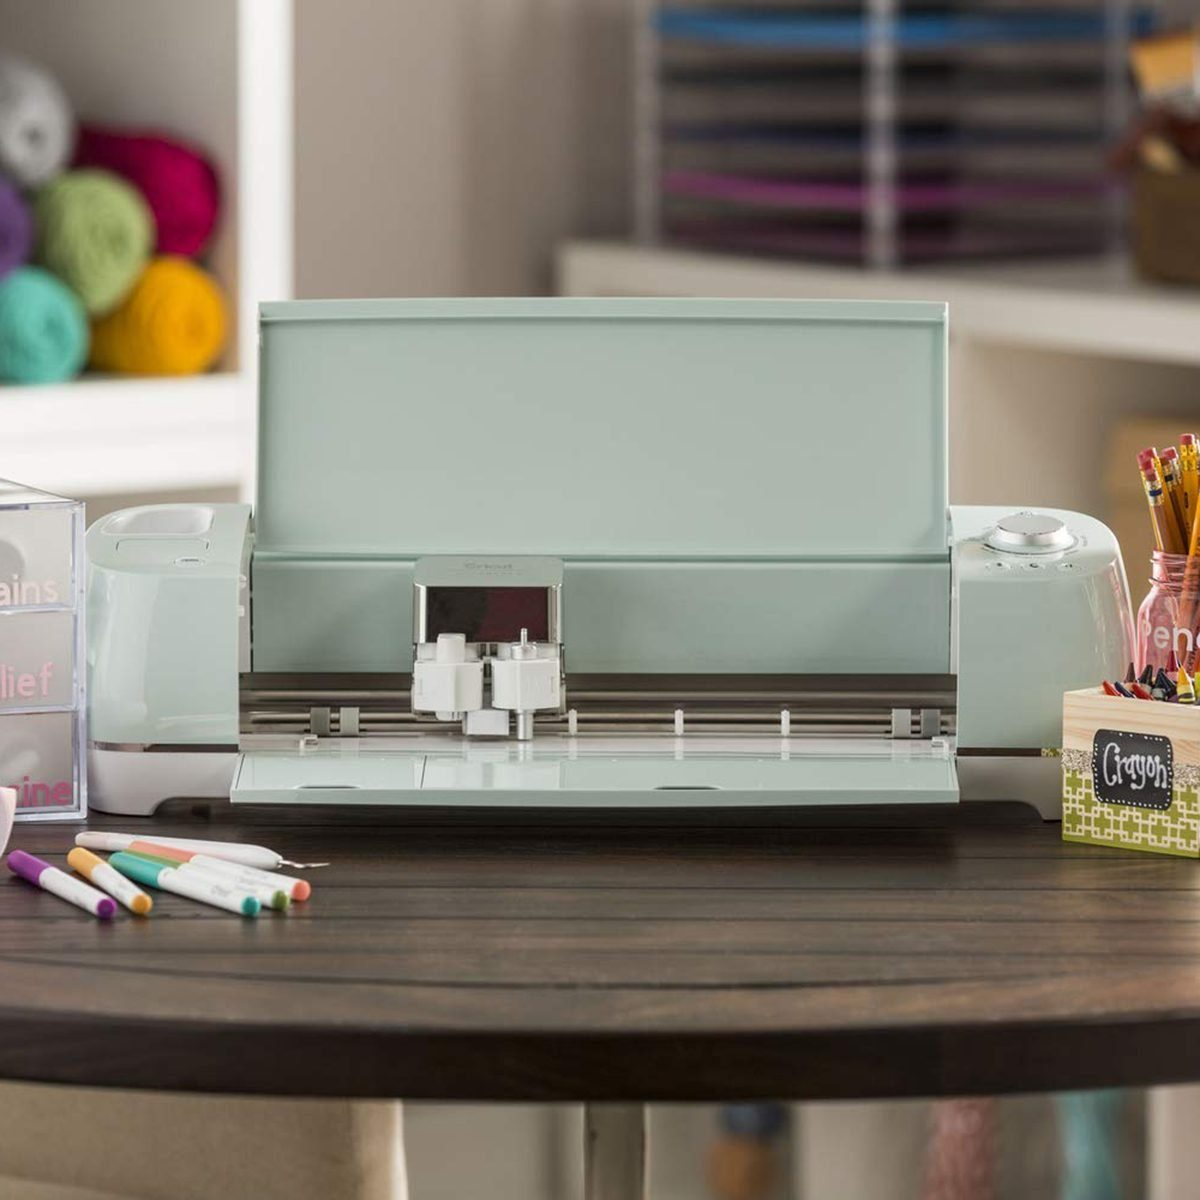 Cricut Explore Air 2 Mintvia amazon.com